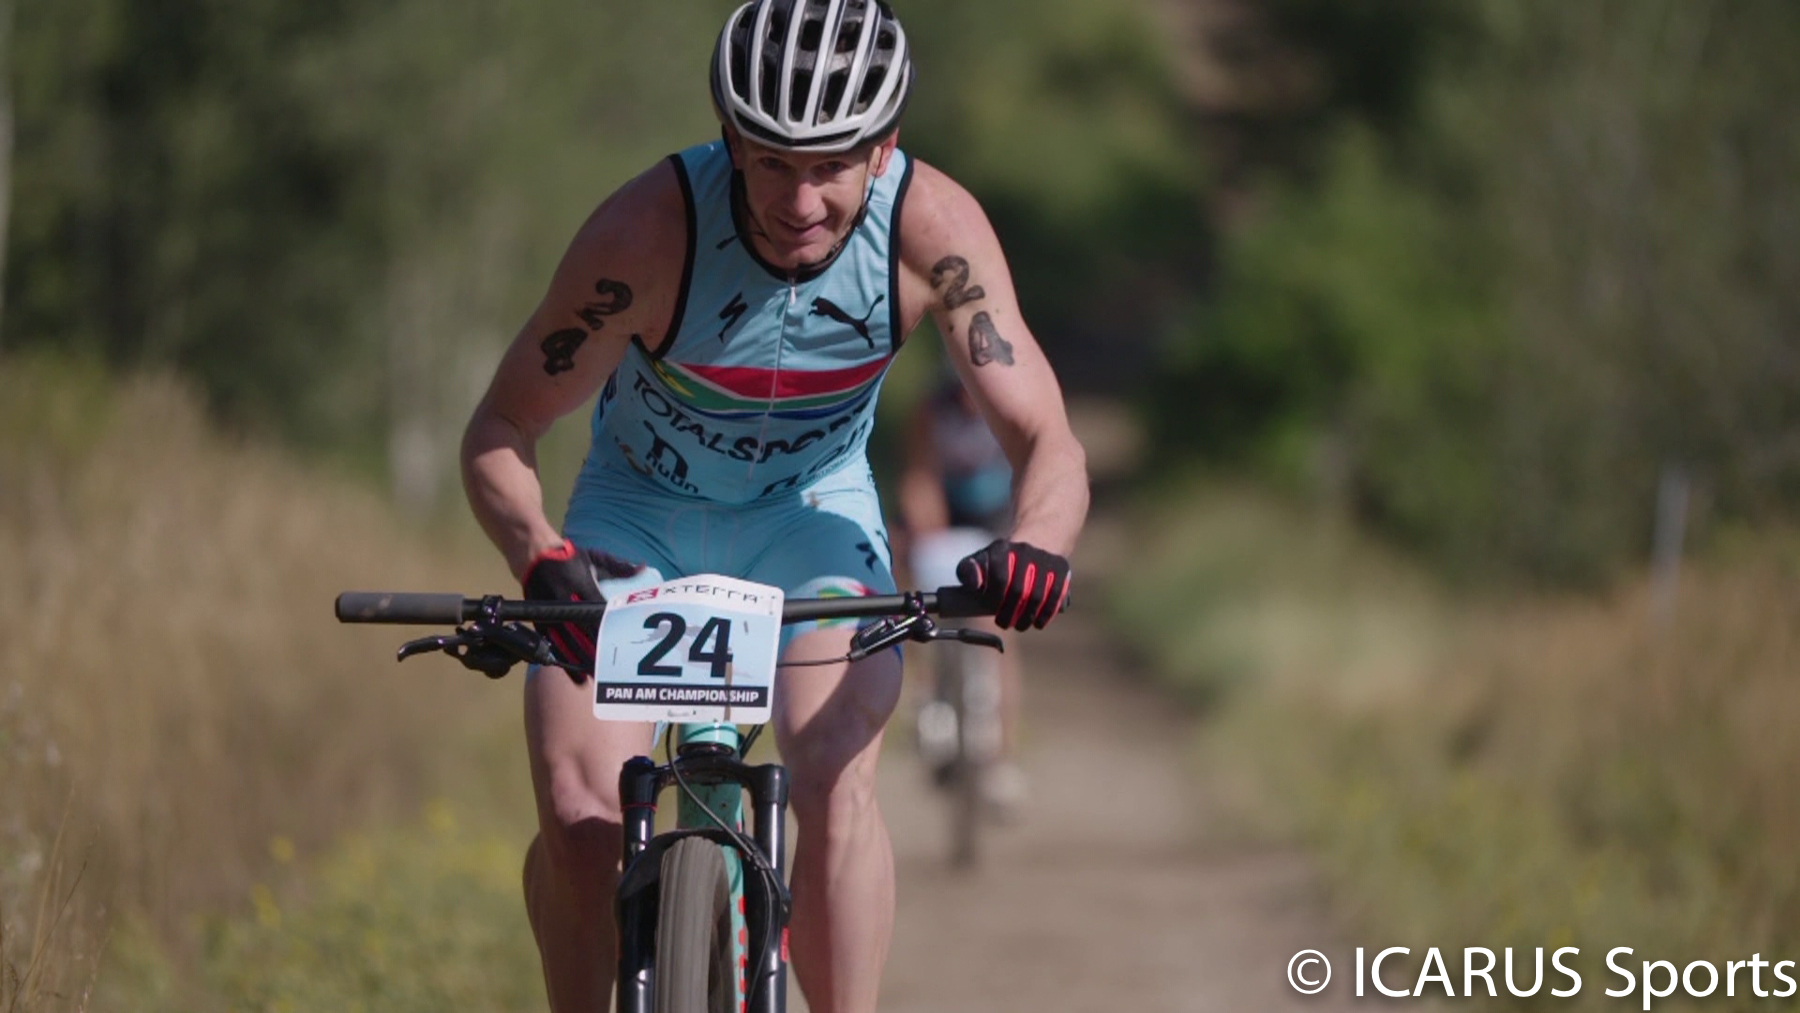 ICARUS SPORTS ESCALATES XTERRA WORLD TOUR BROADCAST TO A GLOBAL AUDIENCE